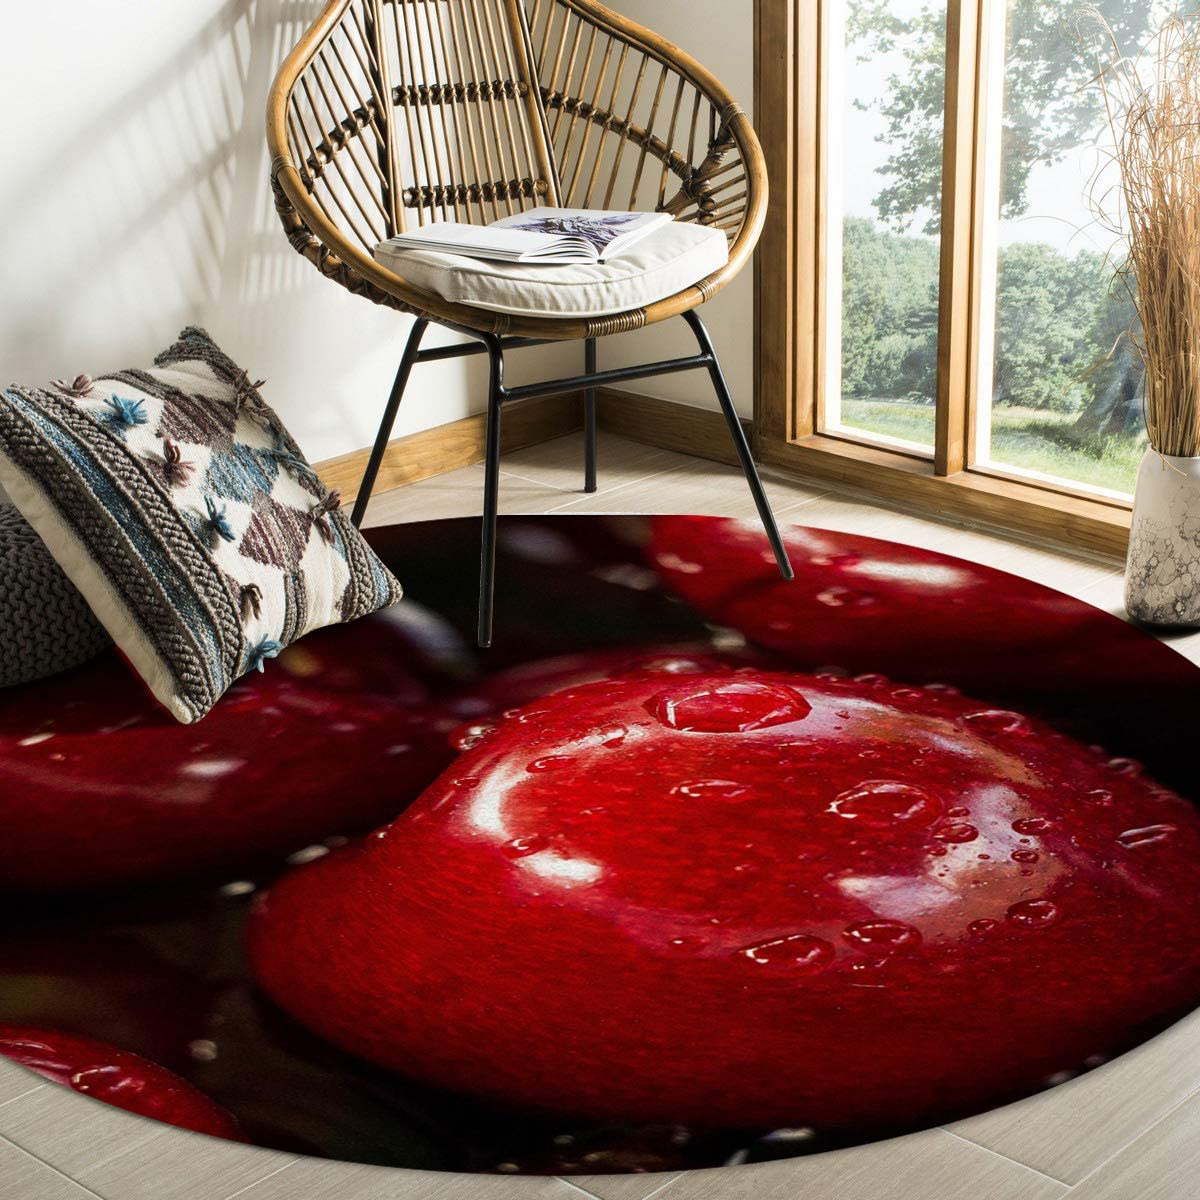 Red Apple Drip Area Rug Round Rugs 4ft, Fresh Fruit Collection Area Runner Circle Rug (Non-Slip) Carpets Kids Living Room Bedroom Indoor Outdoor Nursery Rugs Décor